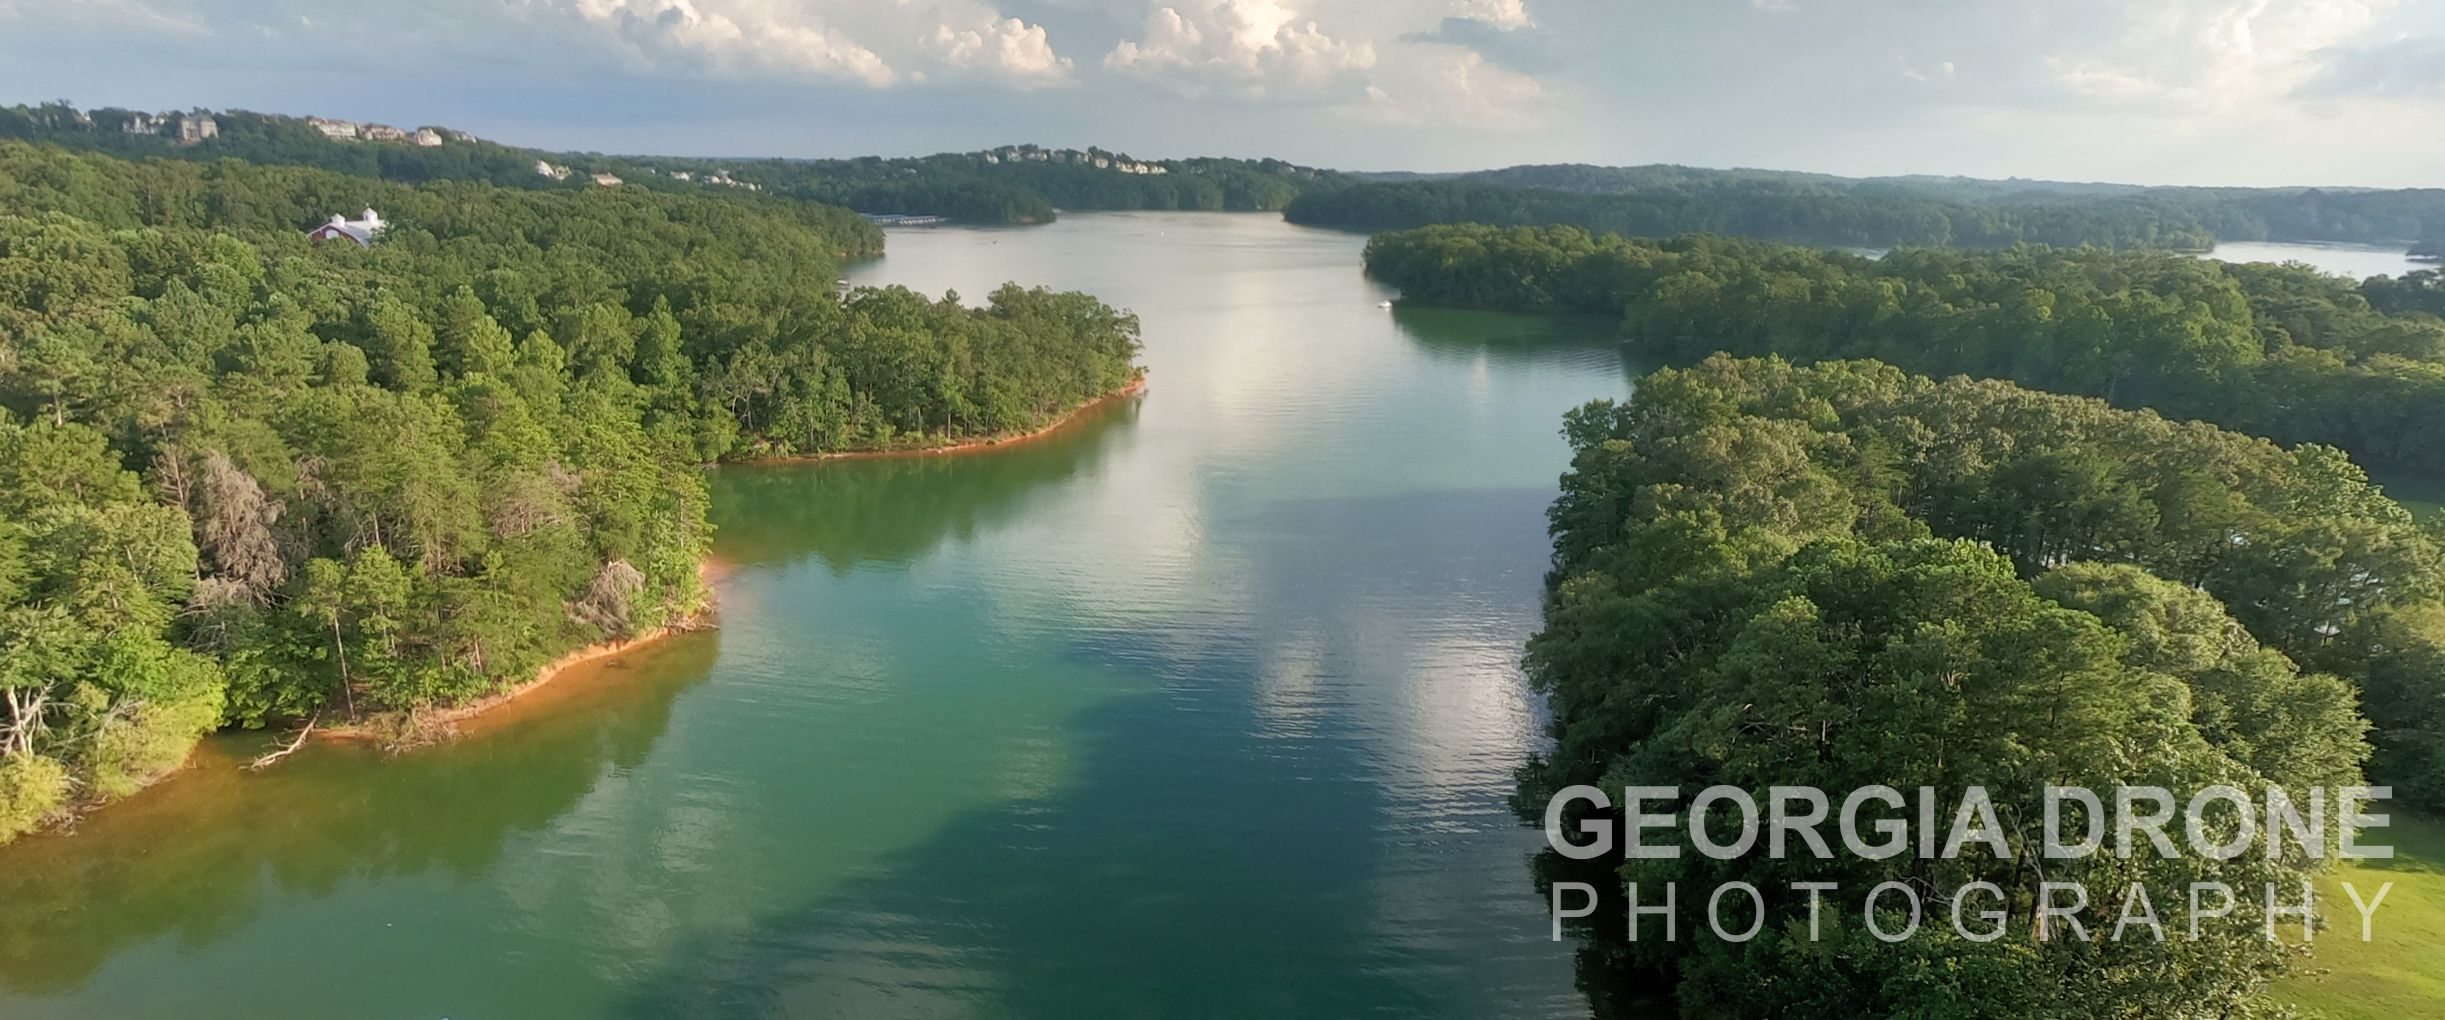 Drone photography of Lake Lanier real estate for sale.